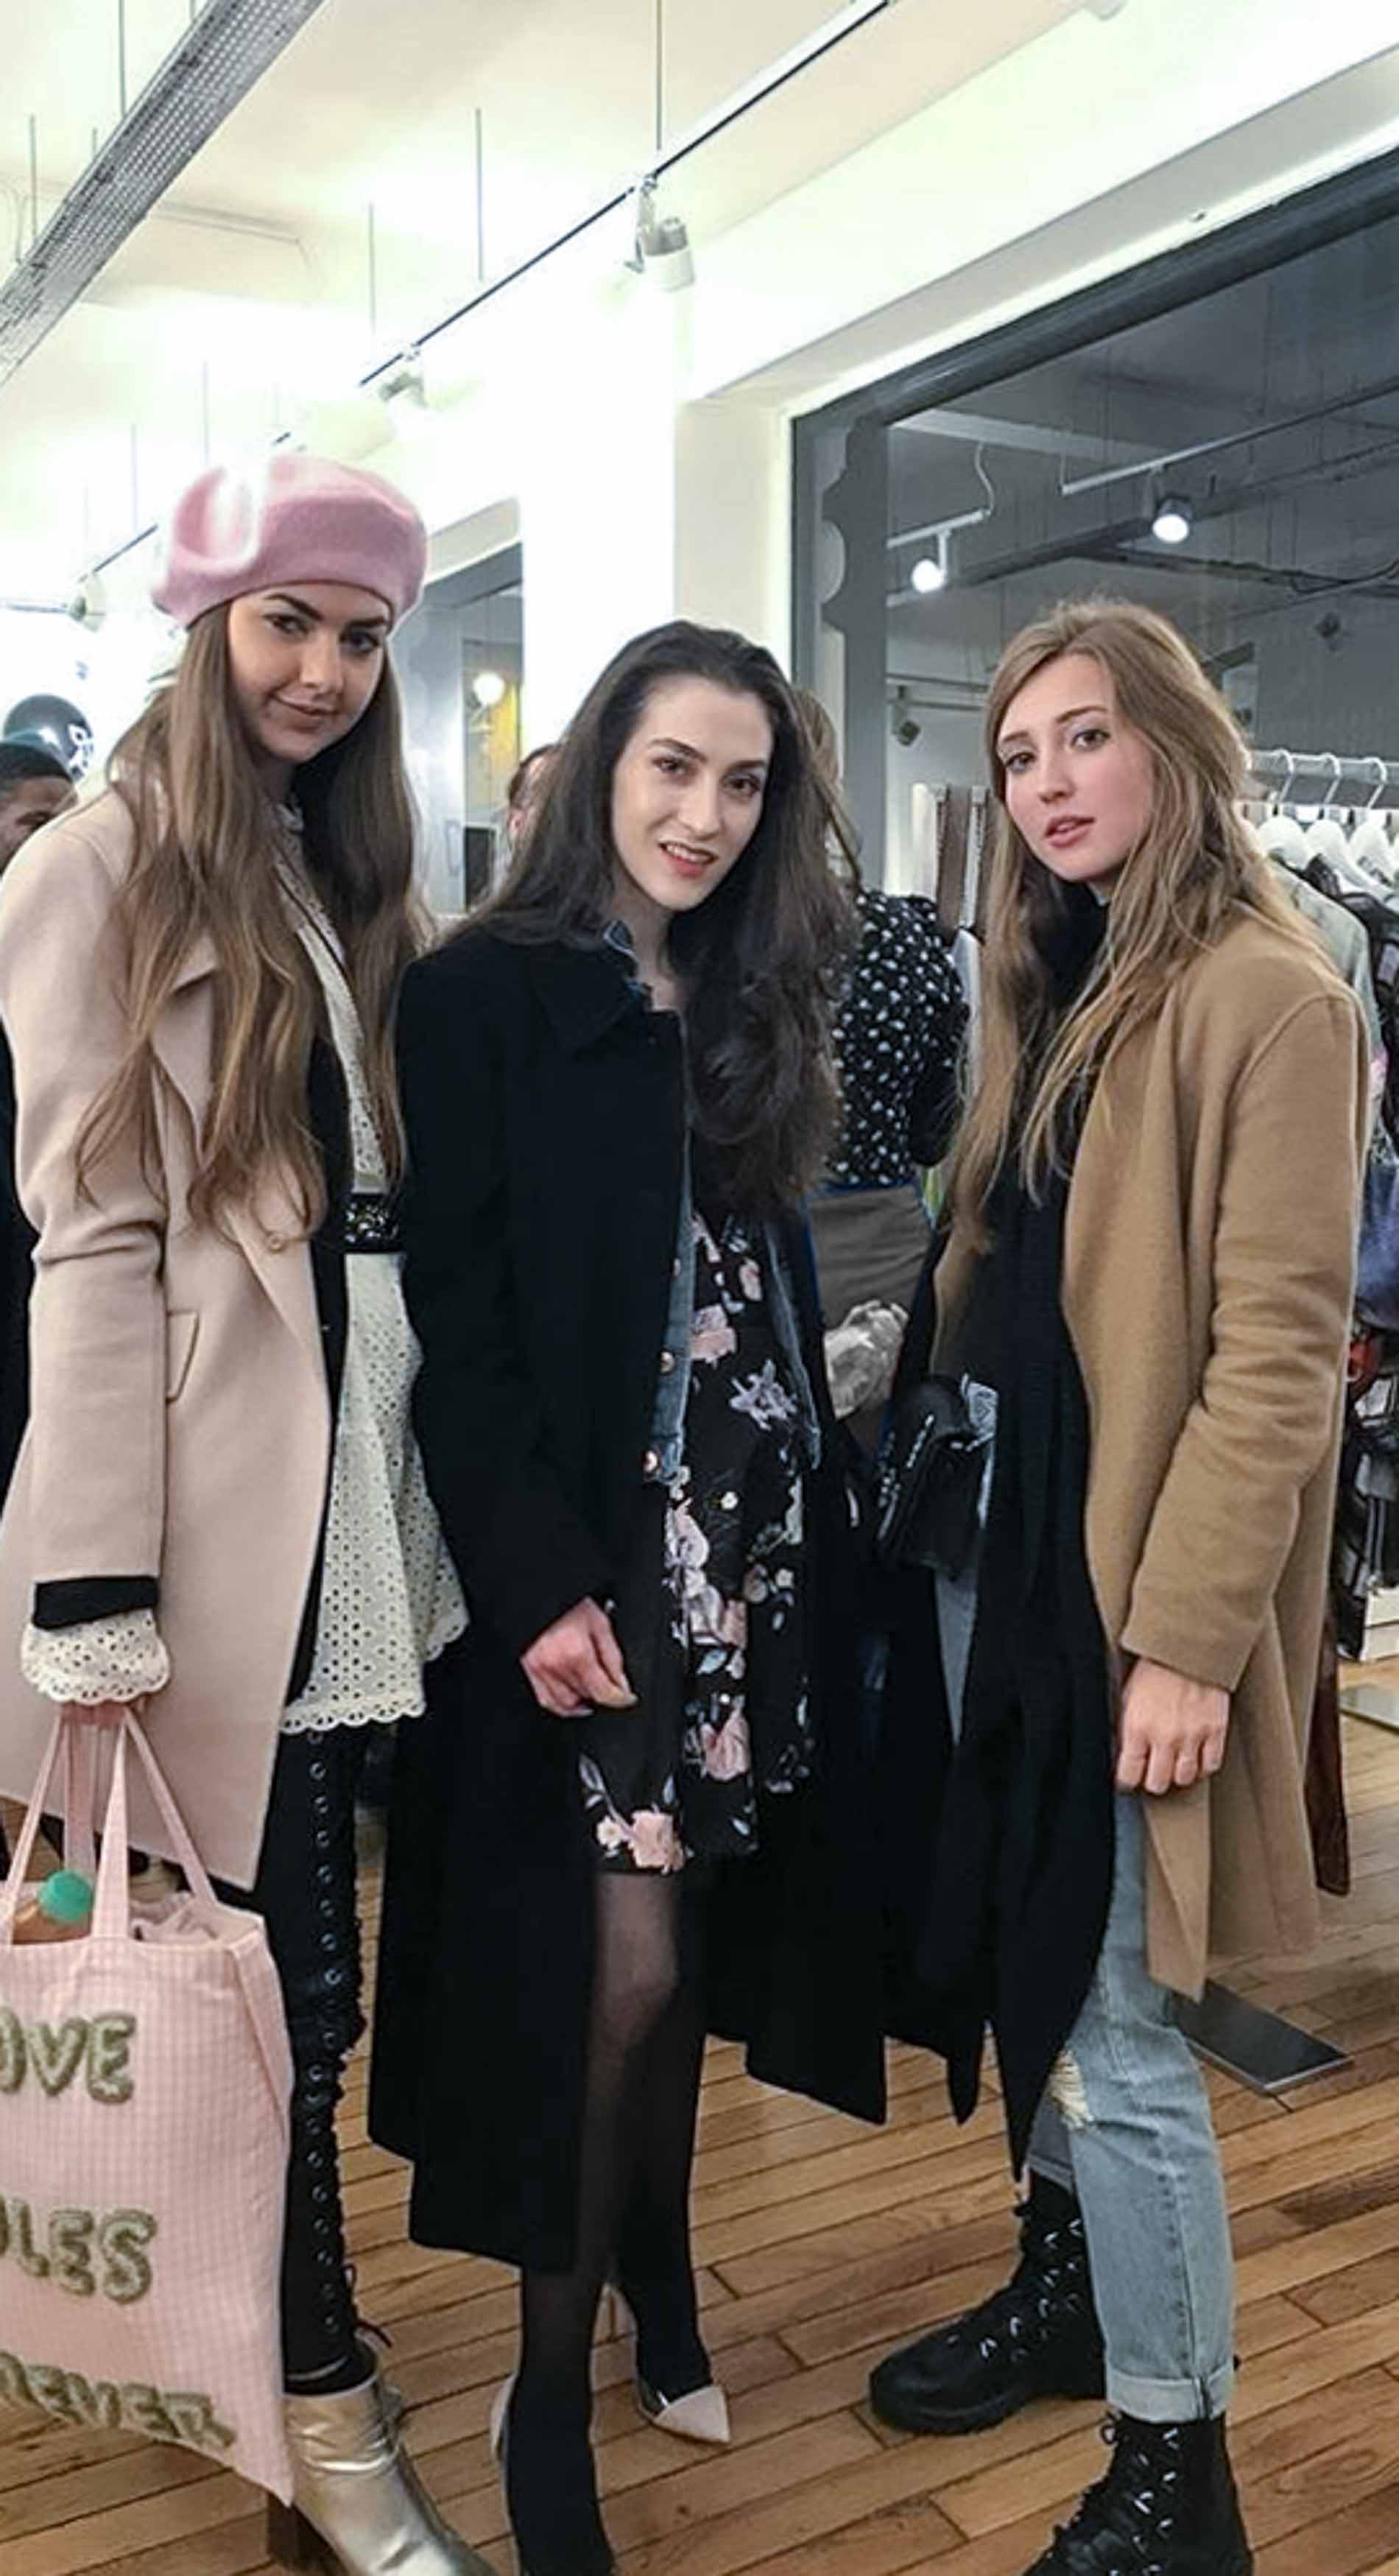 Fashion Blogger Veronika Lipar of Brunette from Wall Street, lifestyle blogger Elena of Elena Zahir, fashion blogger Carmen Jenny of Carmitive during Autumn Winter 2018/19 Paris Fashion Week